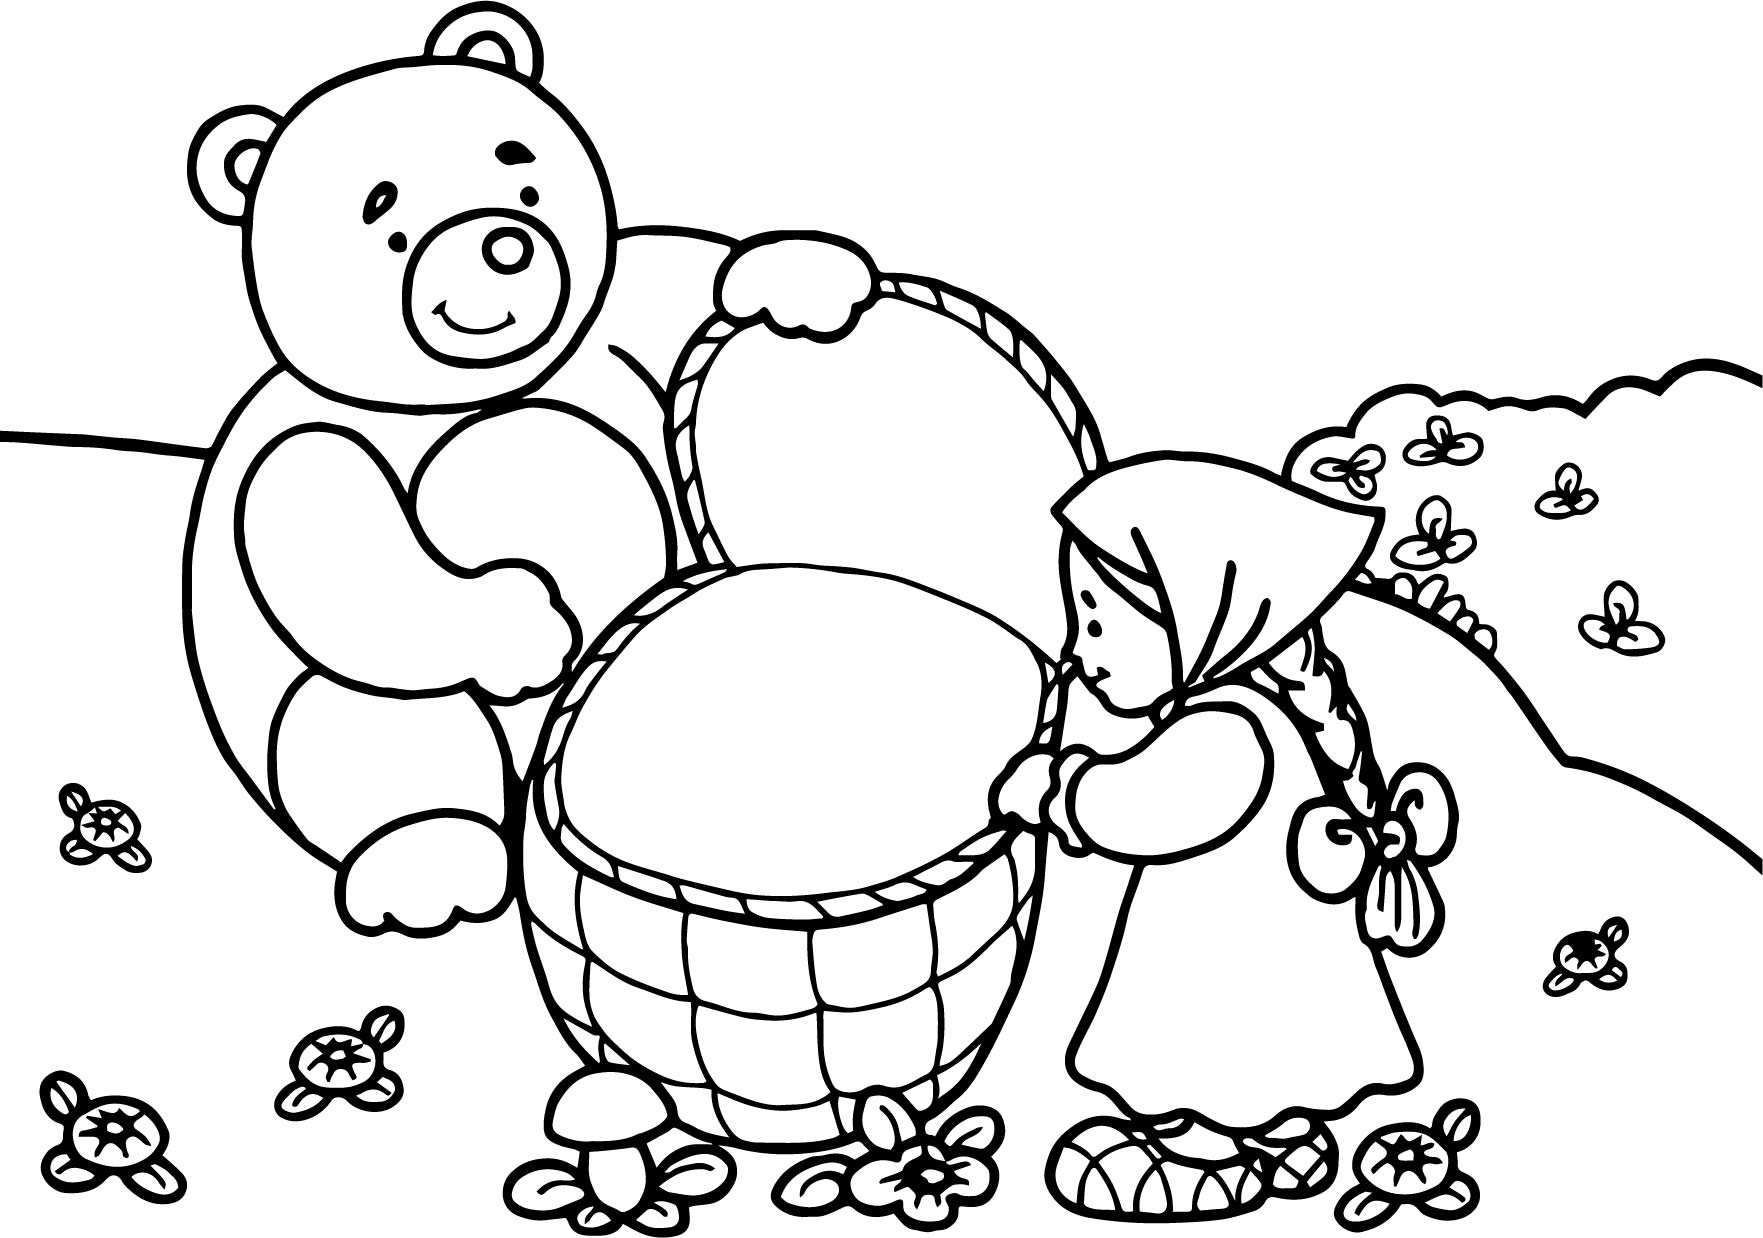 hd wallpapers masha and the bear coloring pages tio earecom press